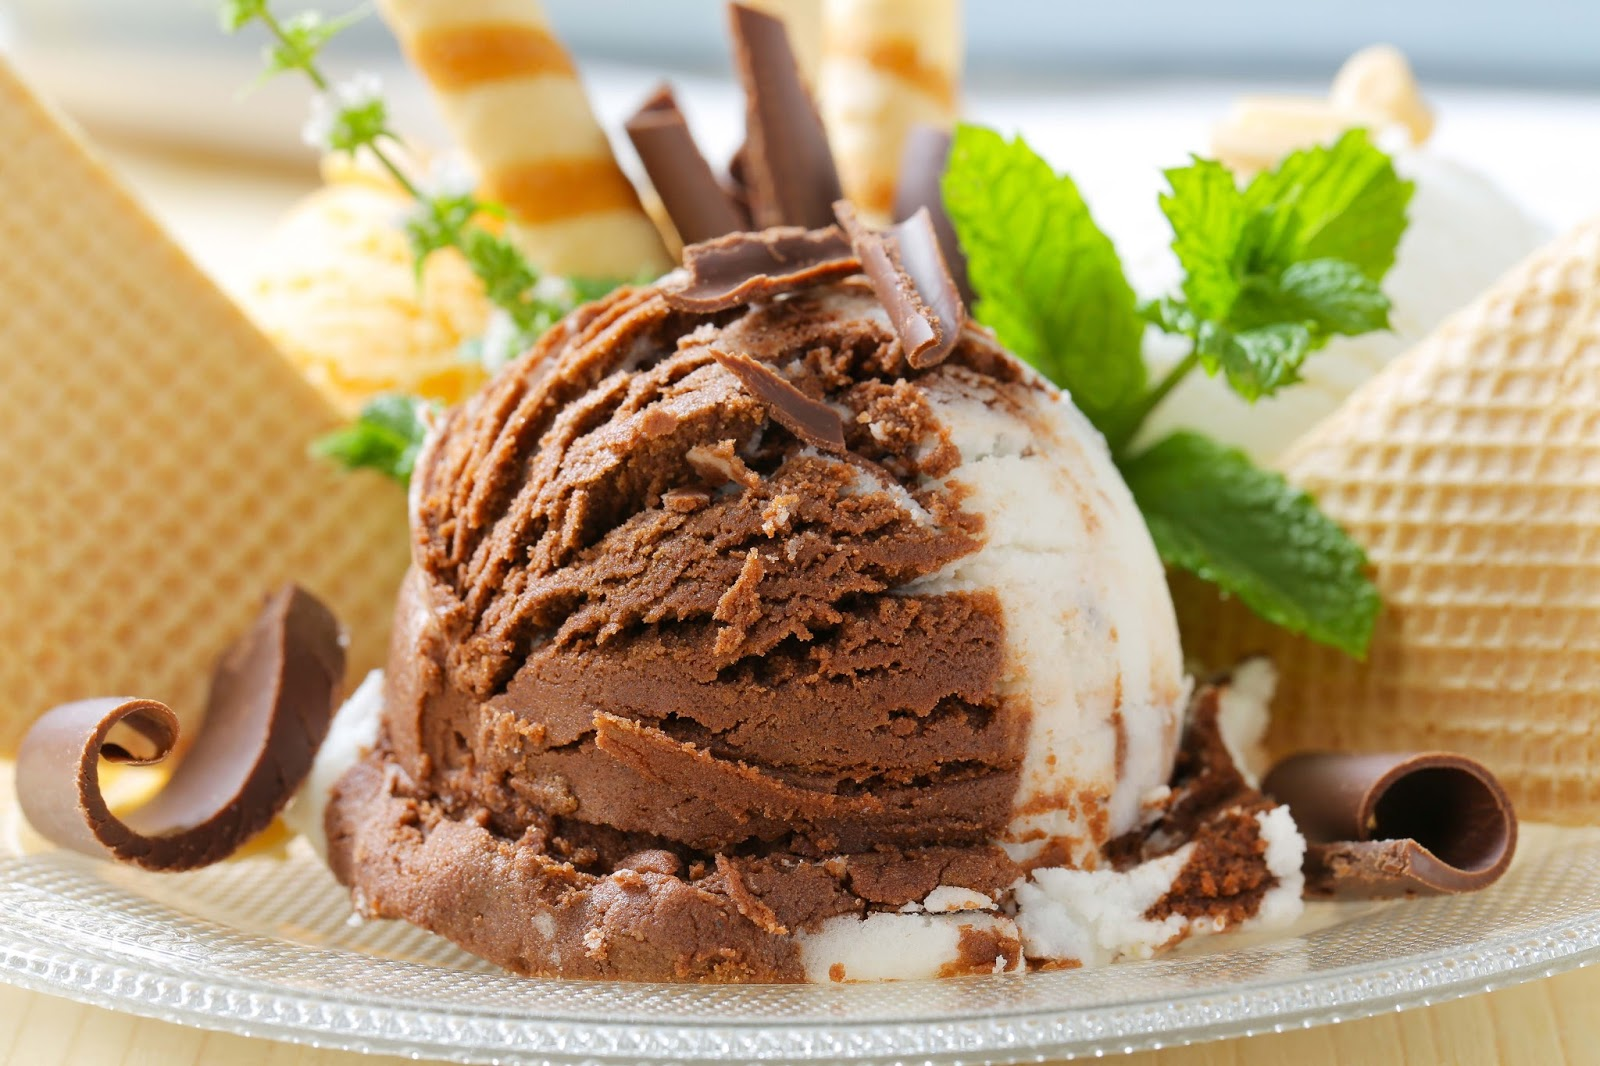 Ice Cream Cake Hd Images : Dessert Yummy Ice Cream Wallpapers ~ Allfreshwallpaper